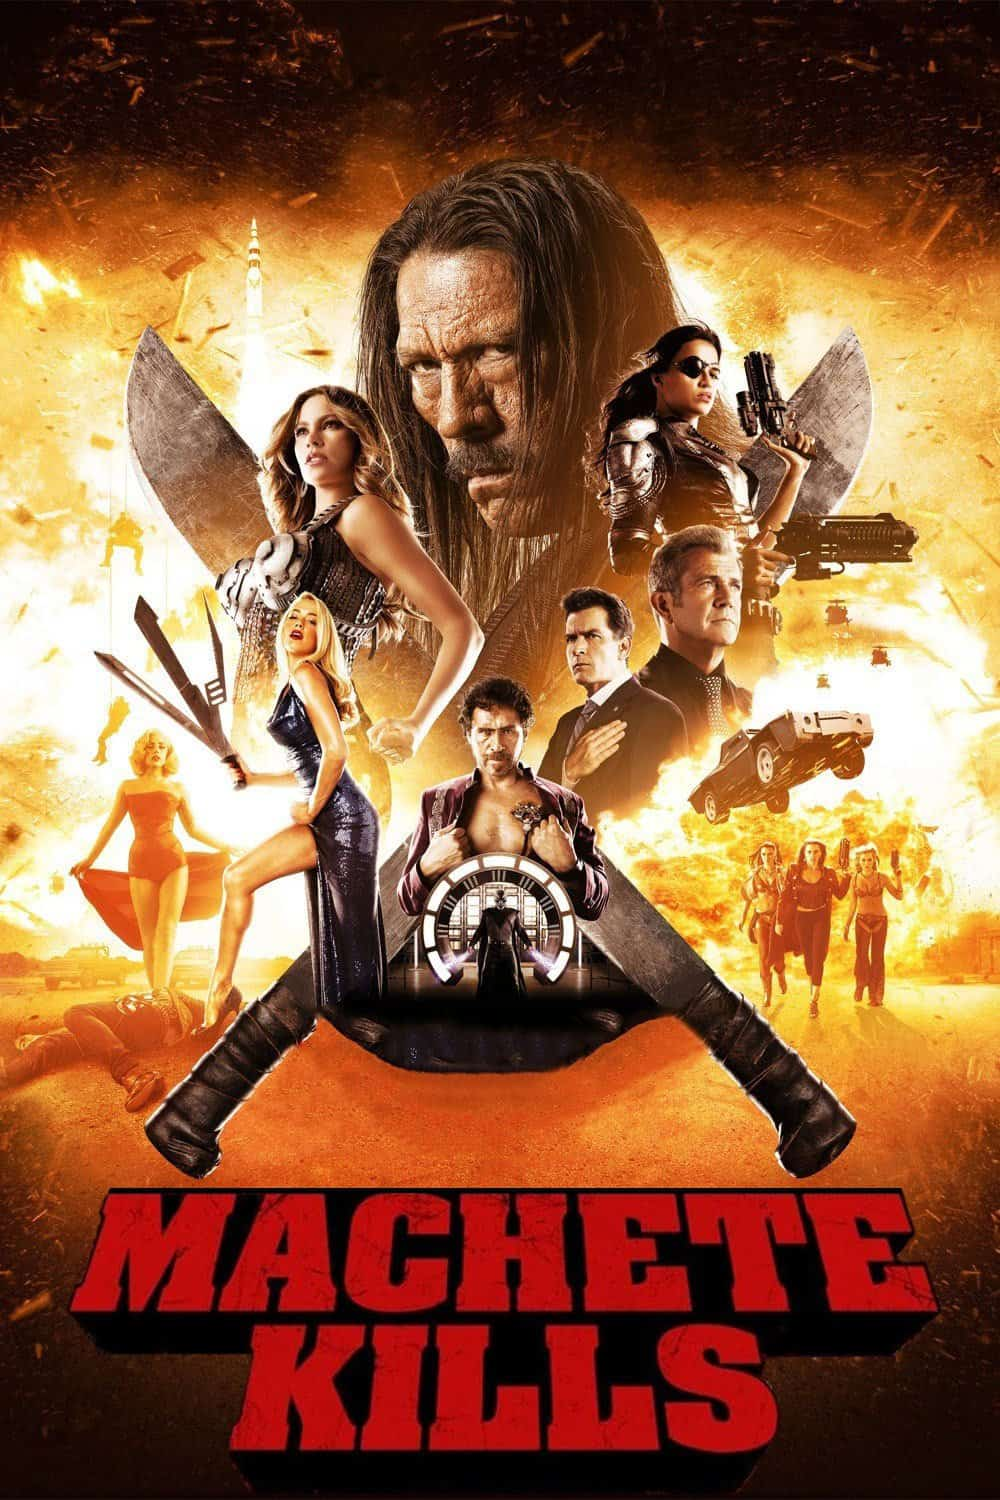 Machete Kills, 2013